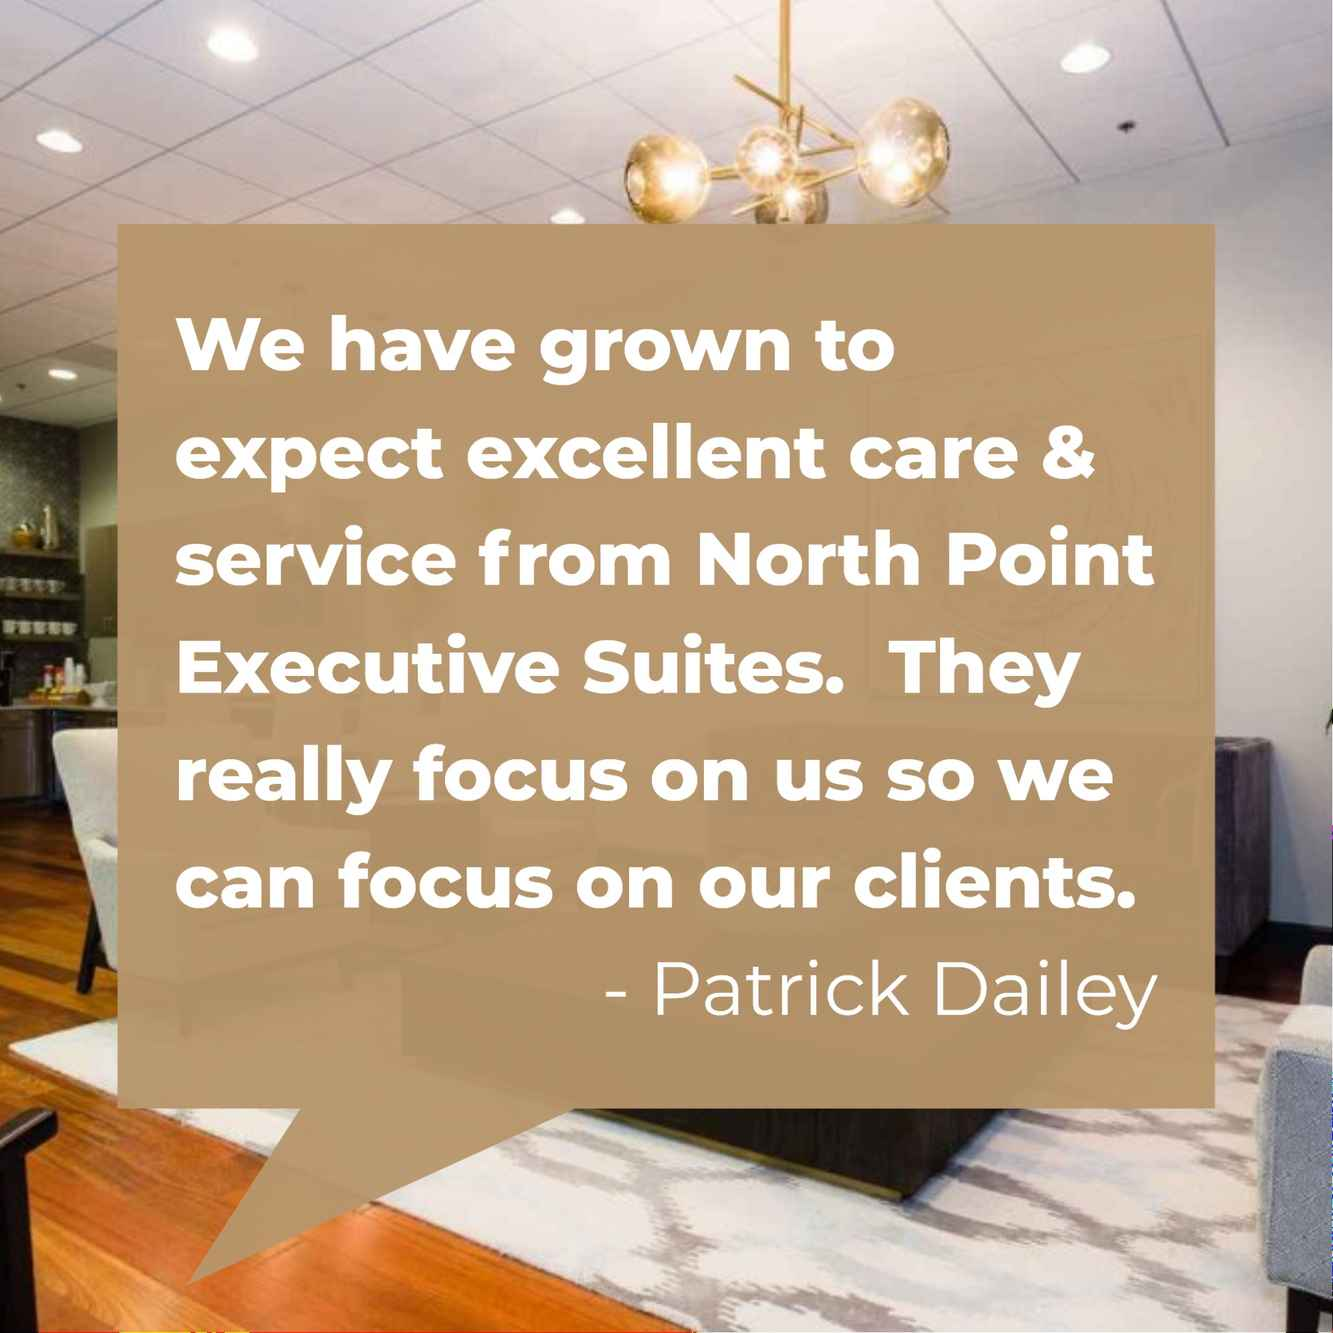 Customer service is a central focus of the team at NorthPoint Executive Suites.